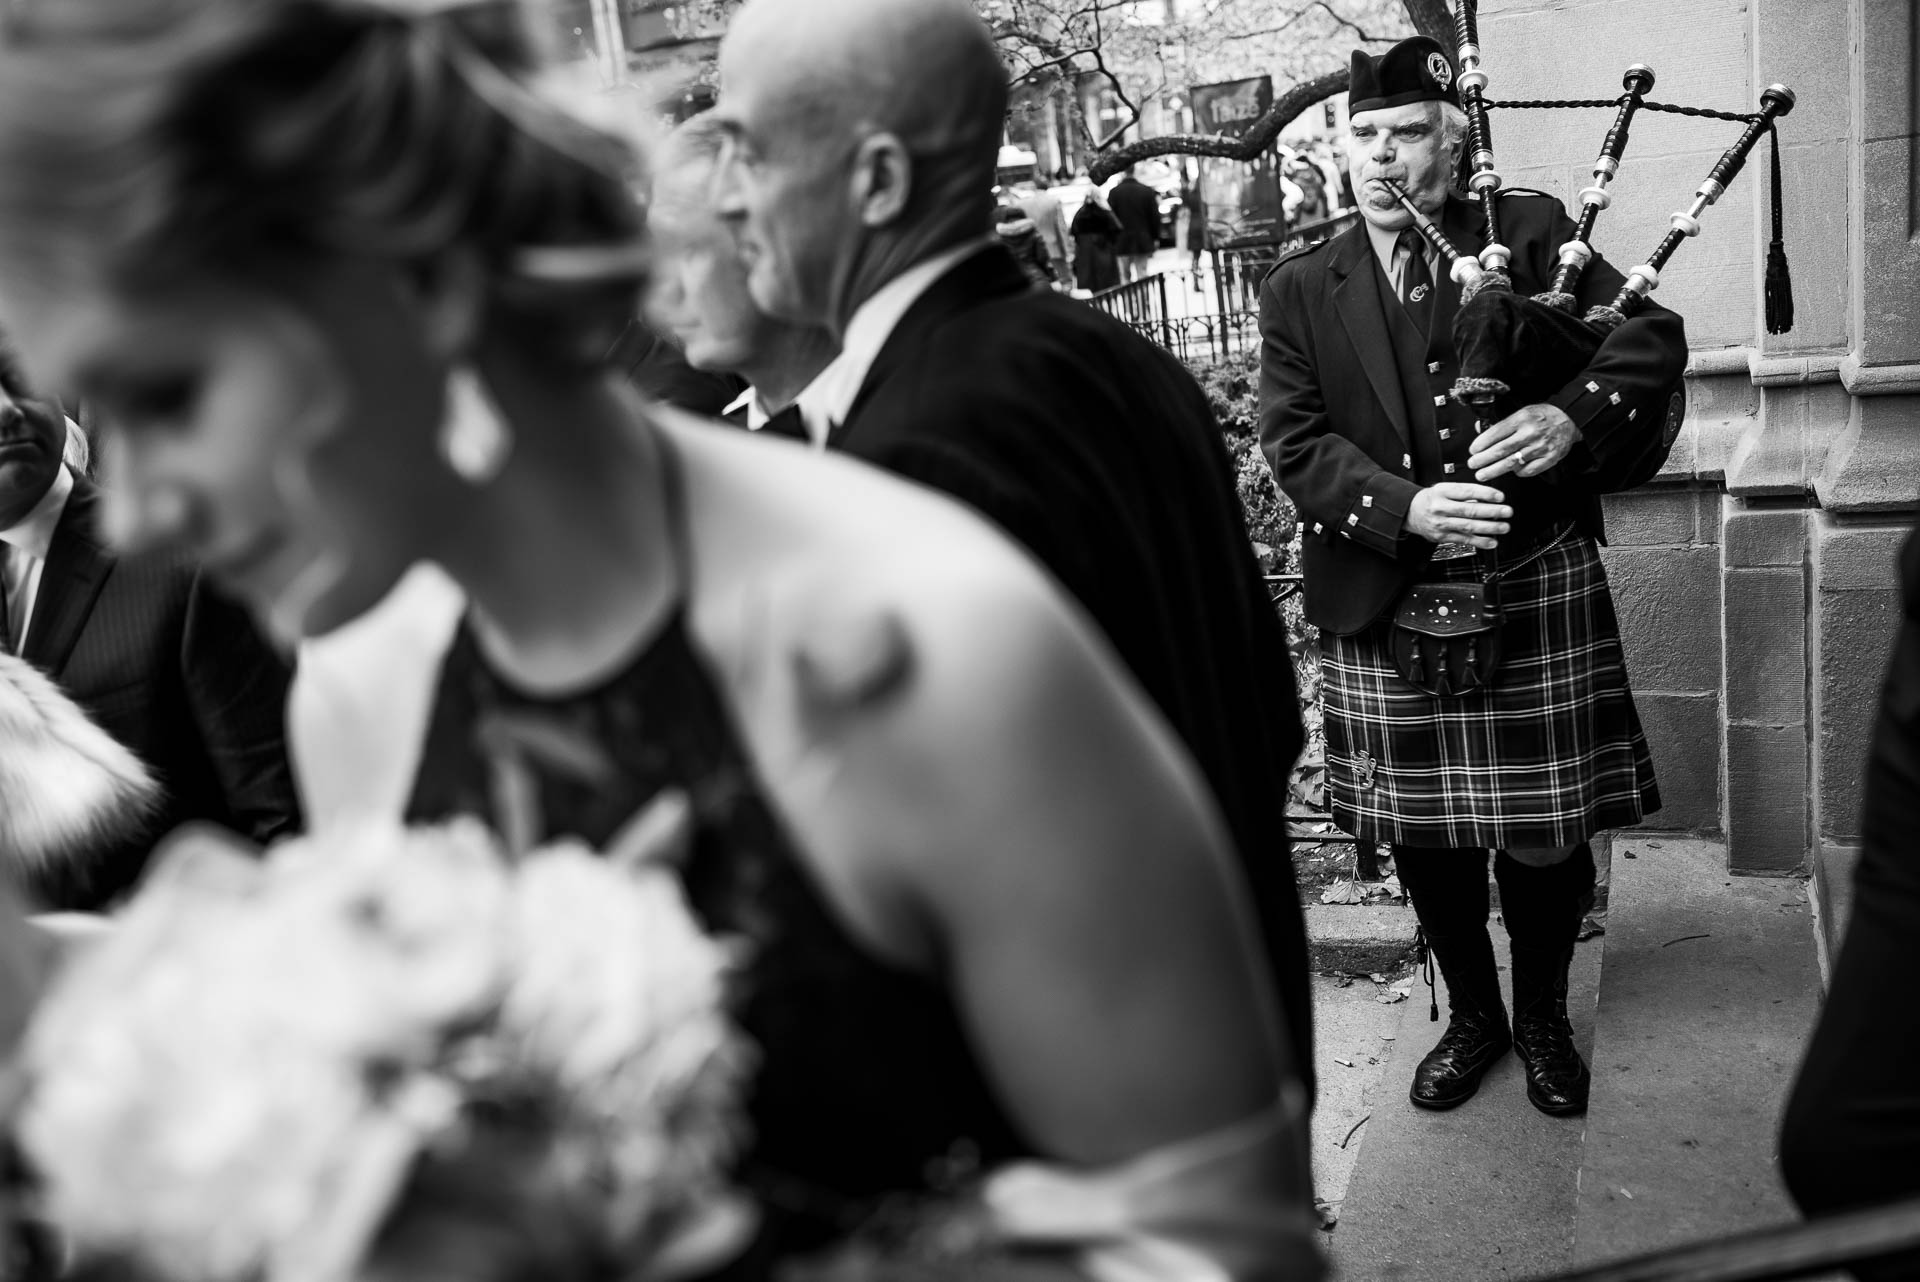 Bagpiper plays after a wedding ceremony at Fourth Presbyterian Church in Chicago.